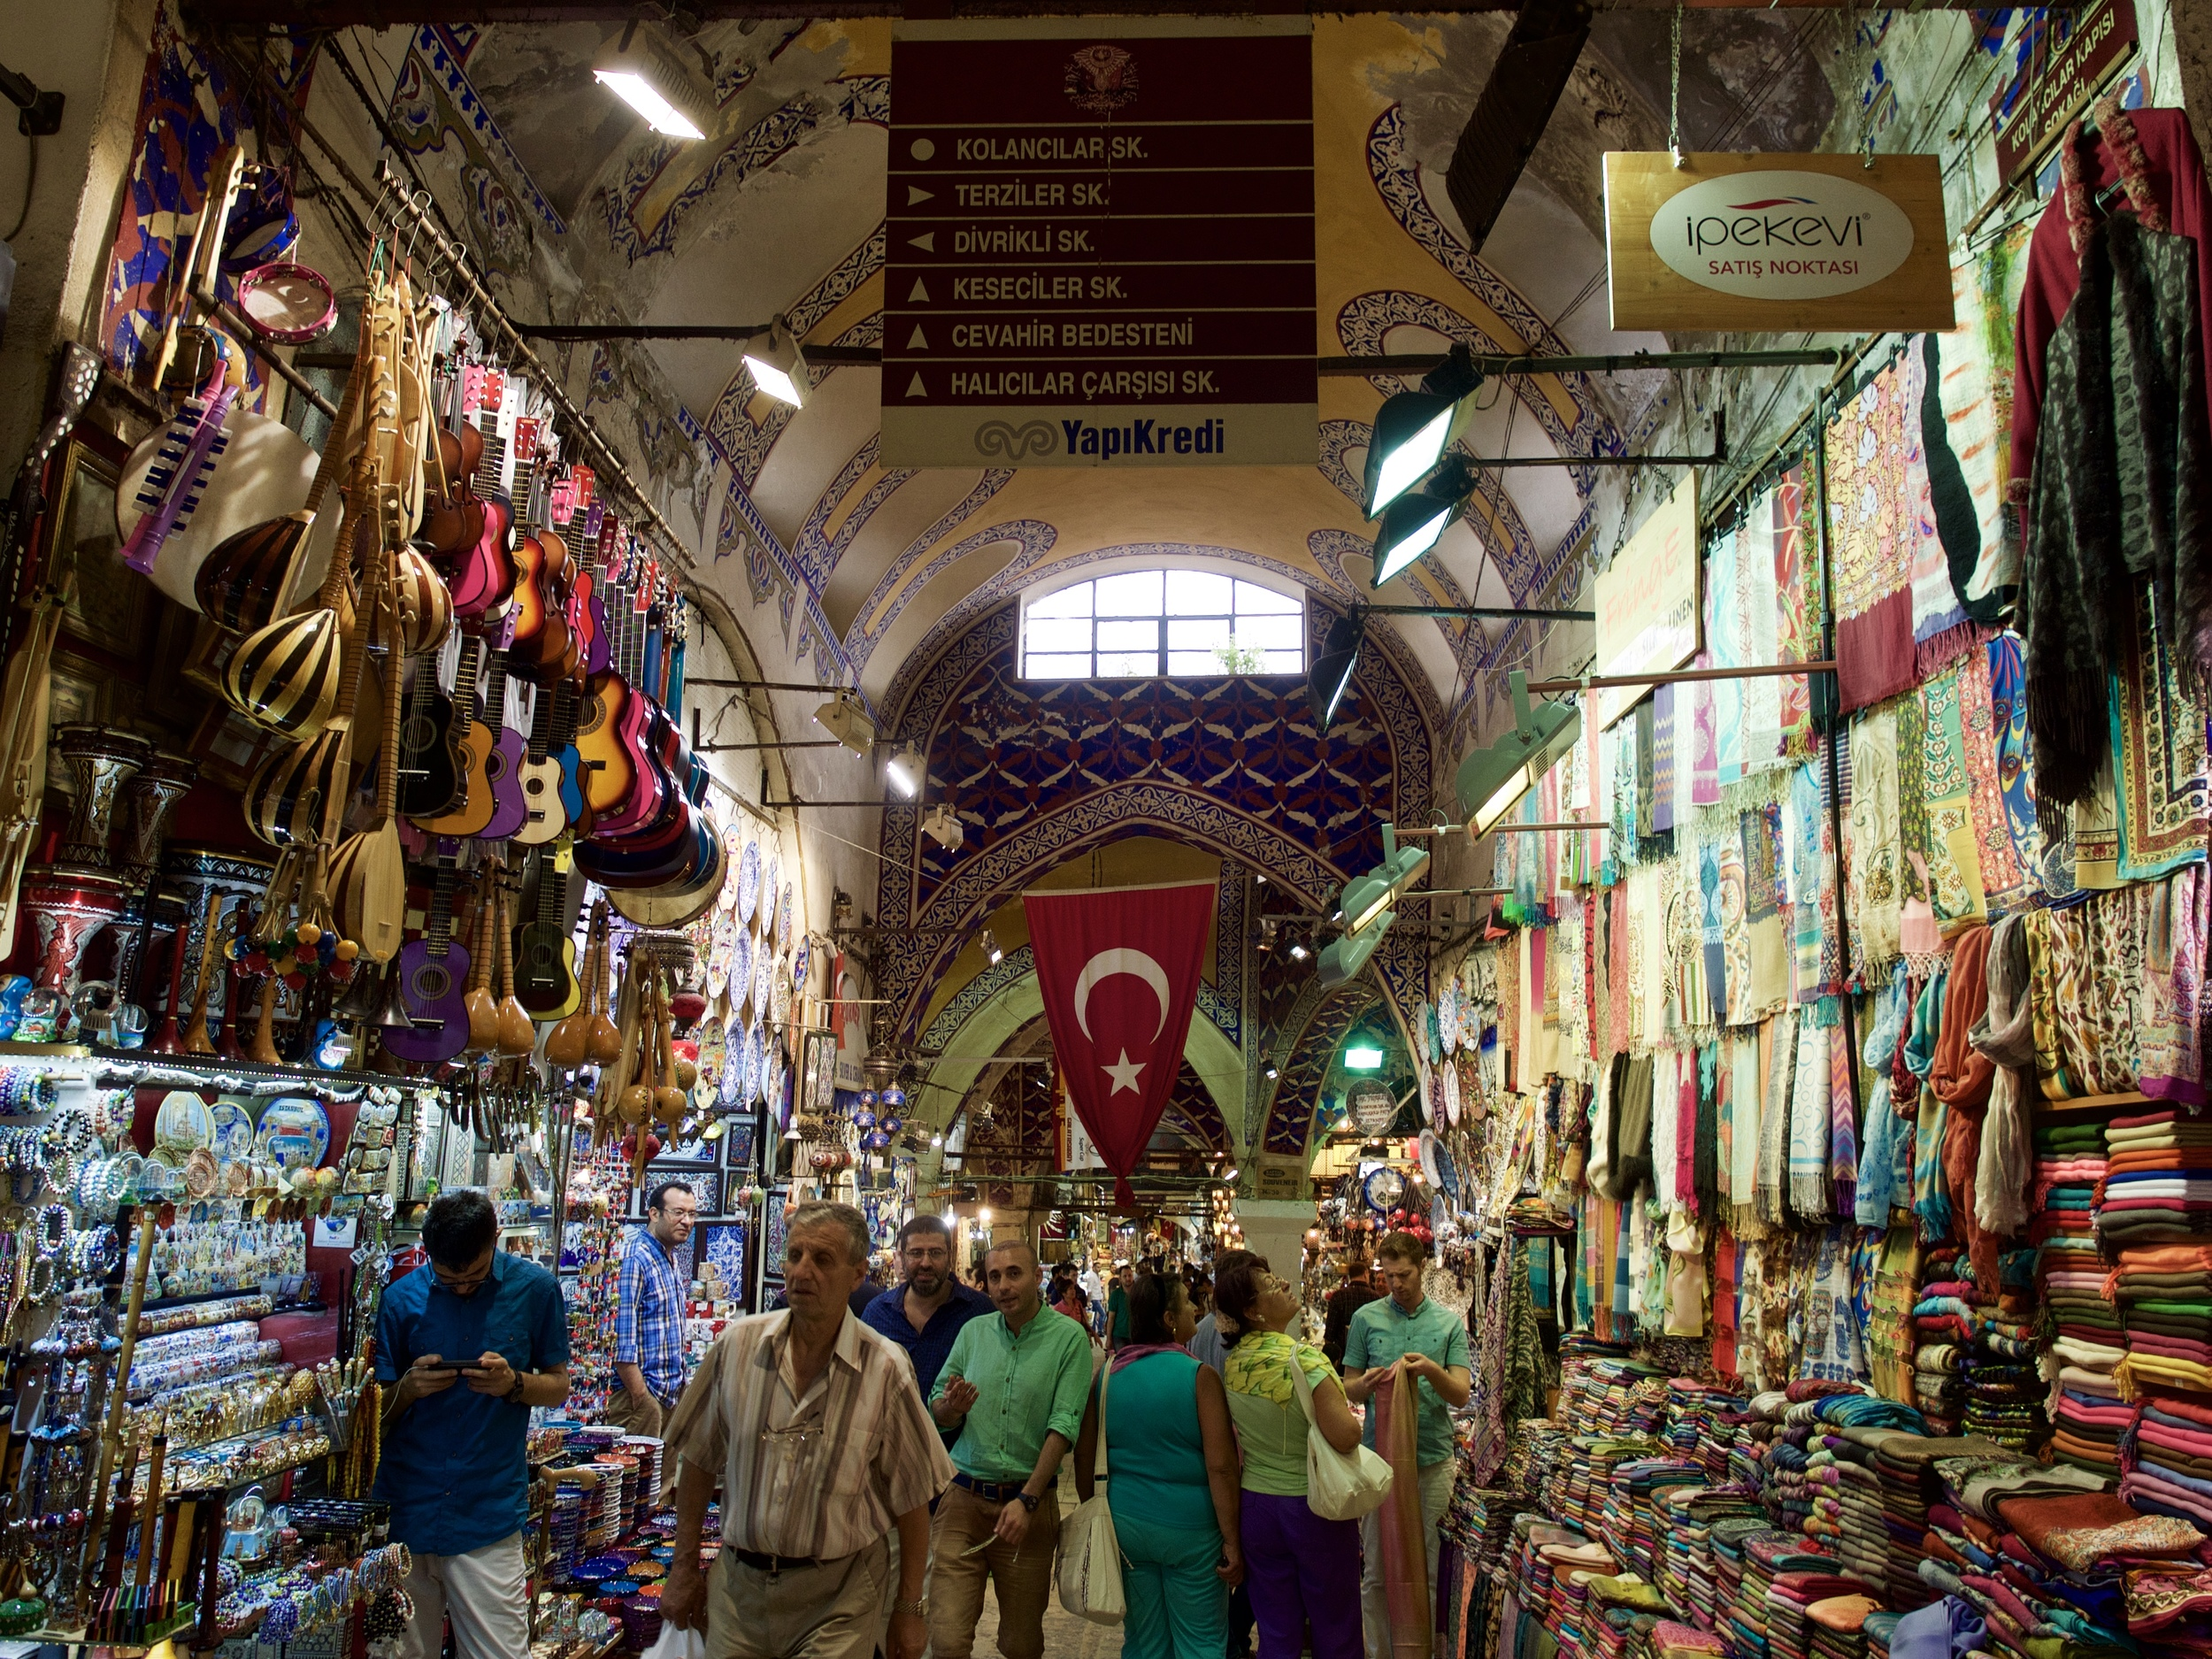 Getting totally lost inside the Grand Bazaar.